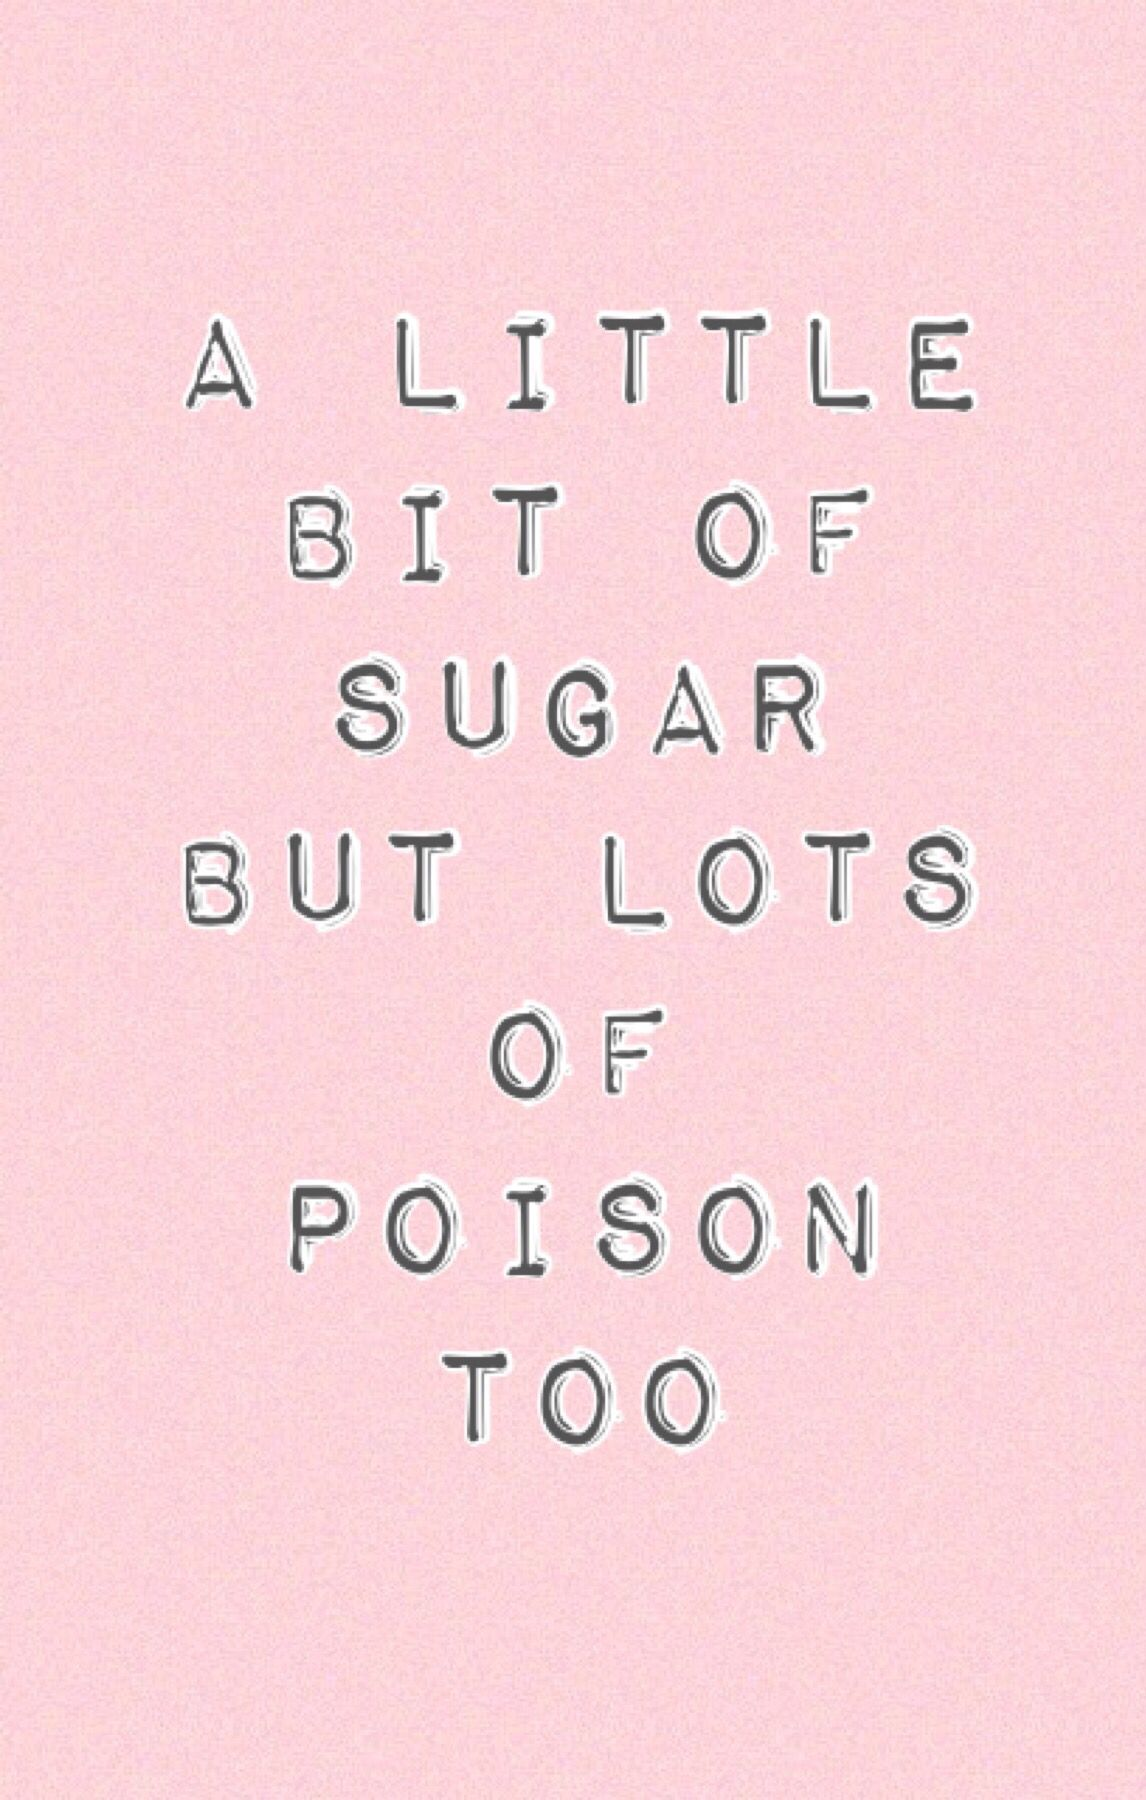 My Phone Background A Lyric From Melanie Martinez Milk Cookies Iphone Background Melanie Martinez Phone Backgrounds